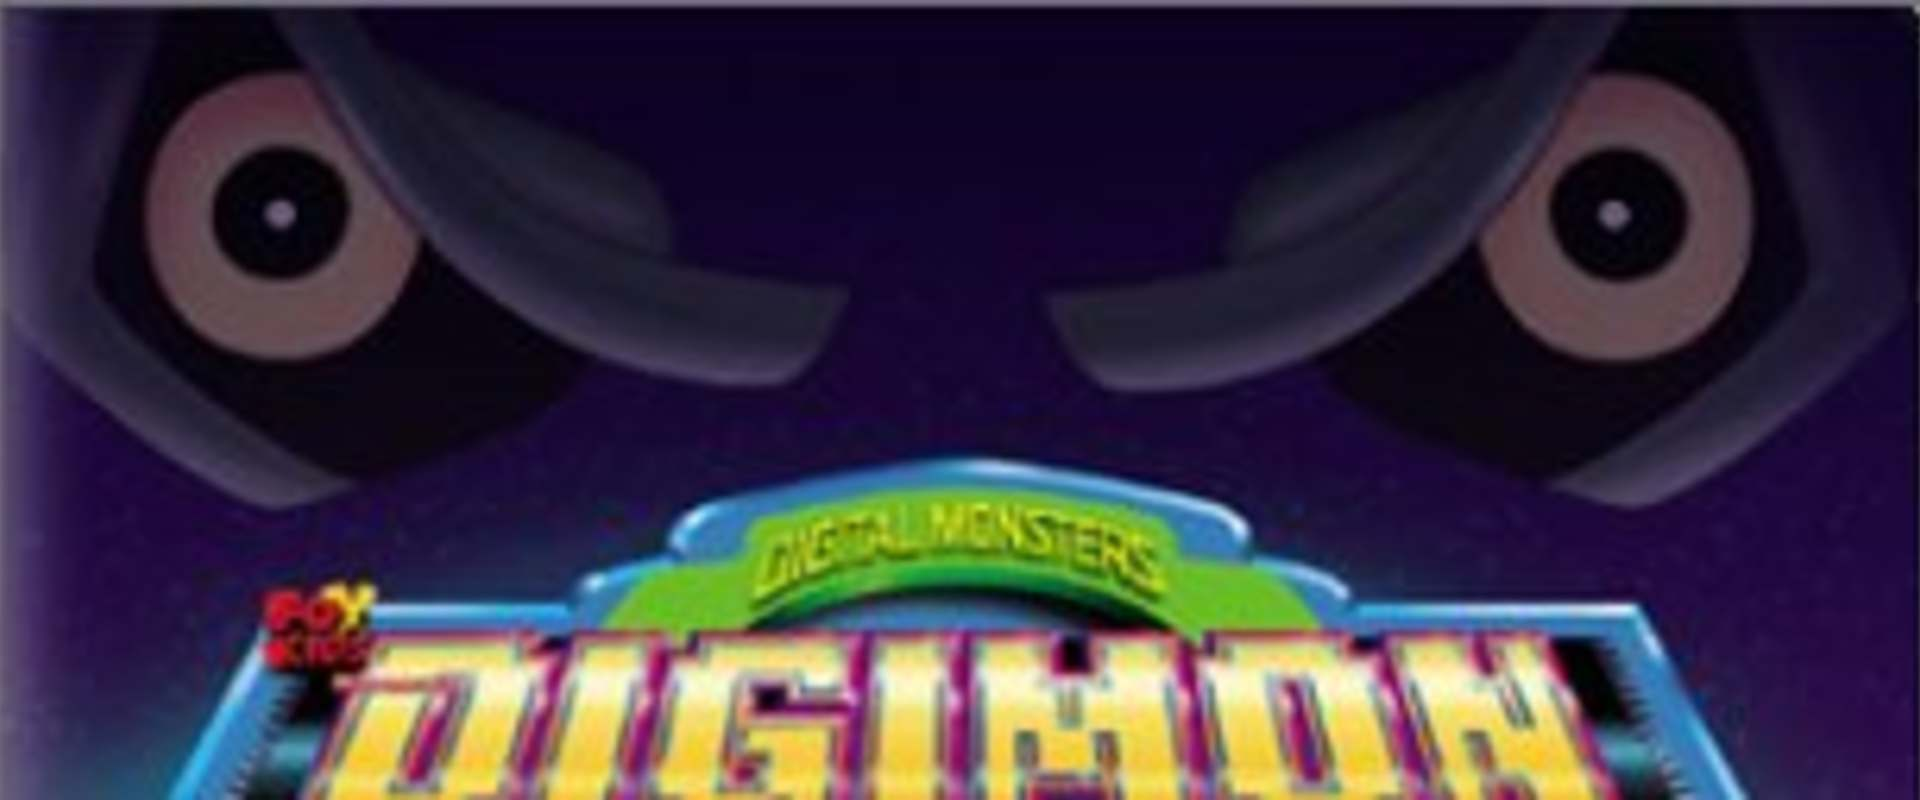 Digimon: The Movie background 1